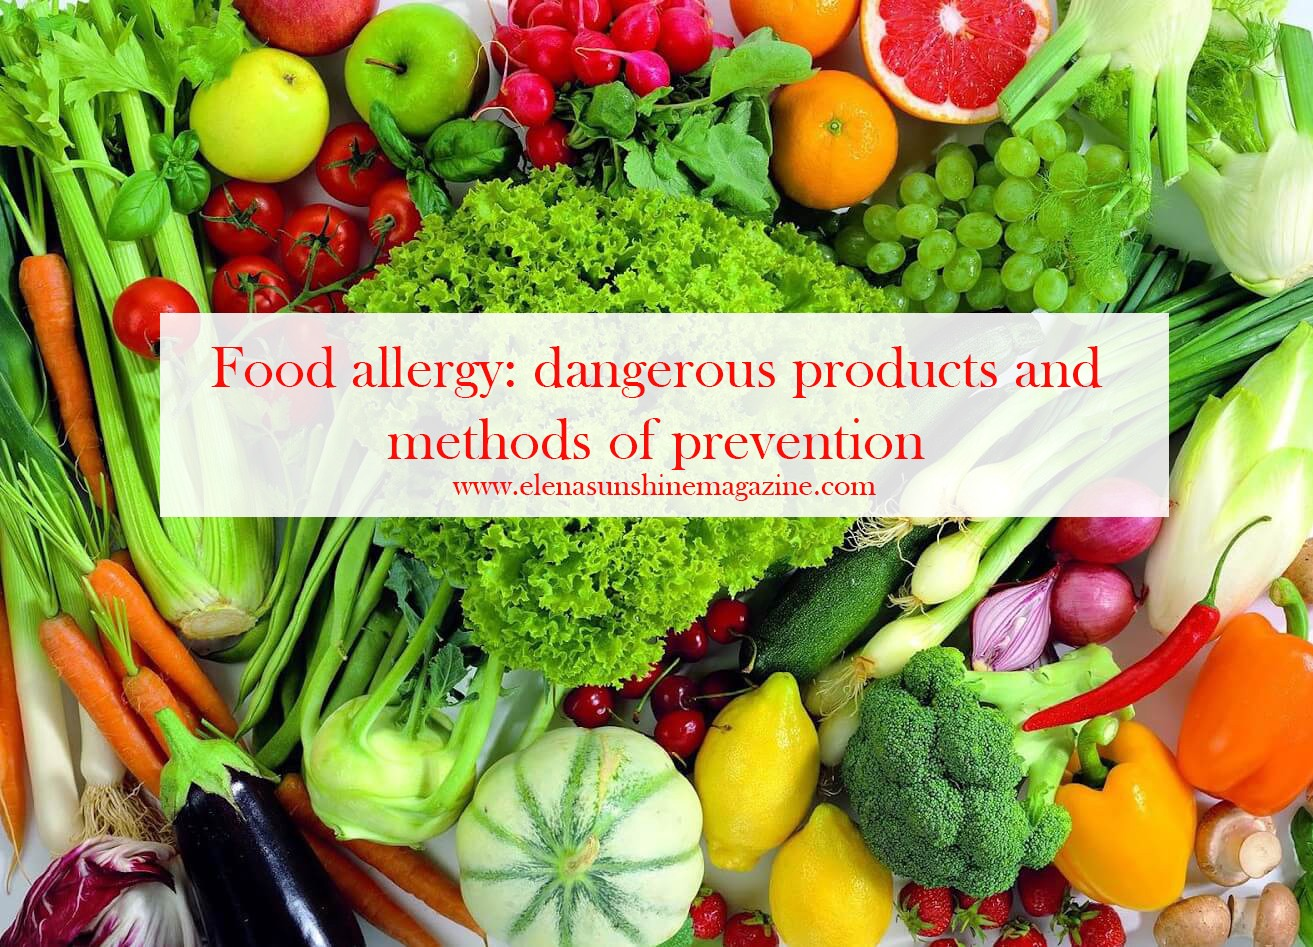 Food allergy: dangerous products and methods of prevention